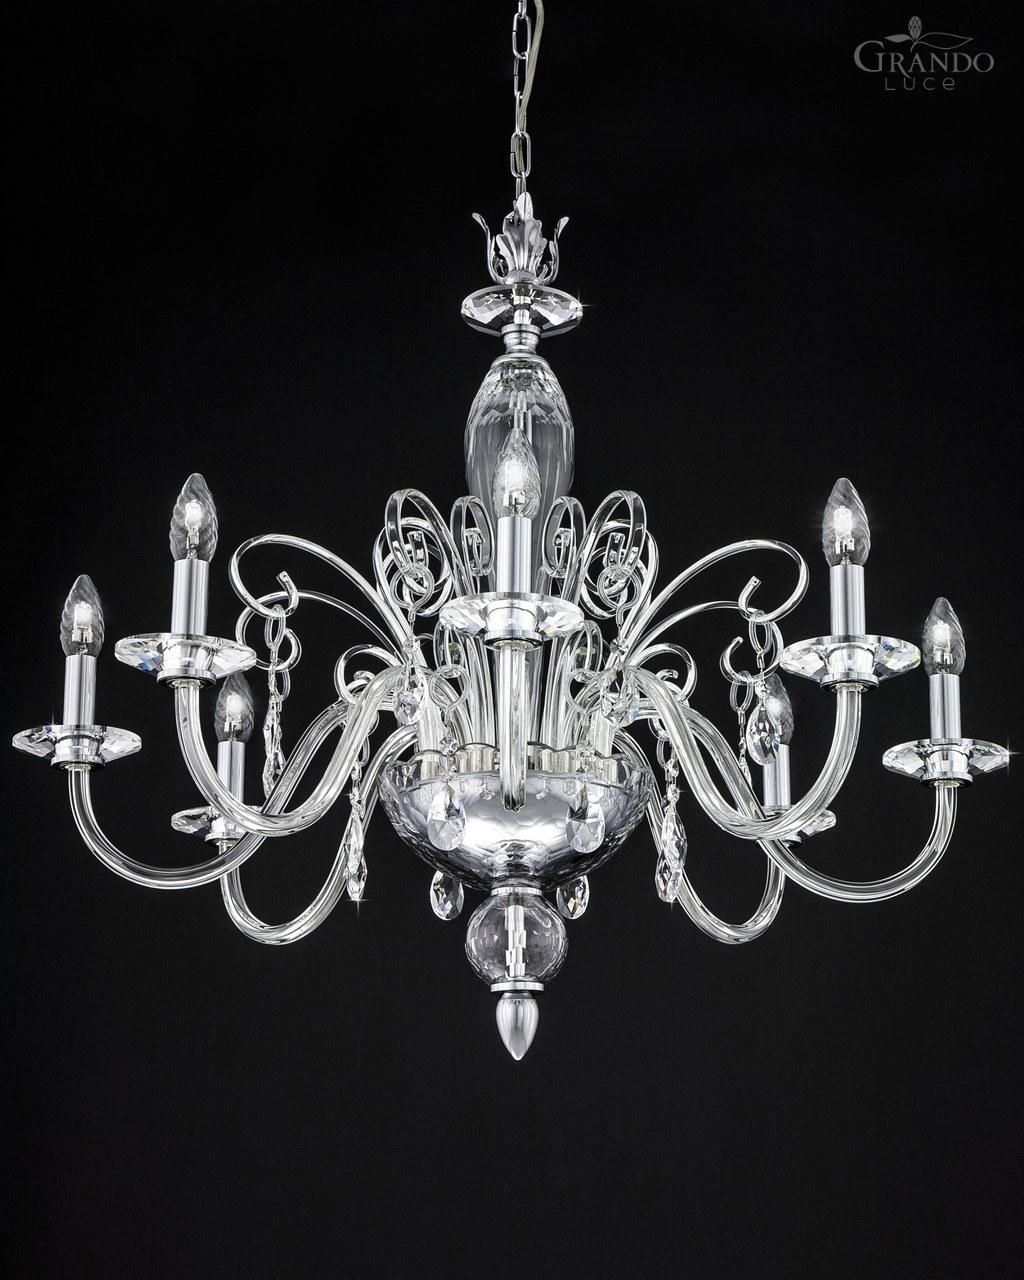 1208 Ch Chrome Crystal Chandelier With Swarovski Elements With Regard To Chandelier Chrome (#1 of 12)